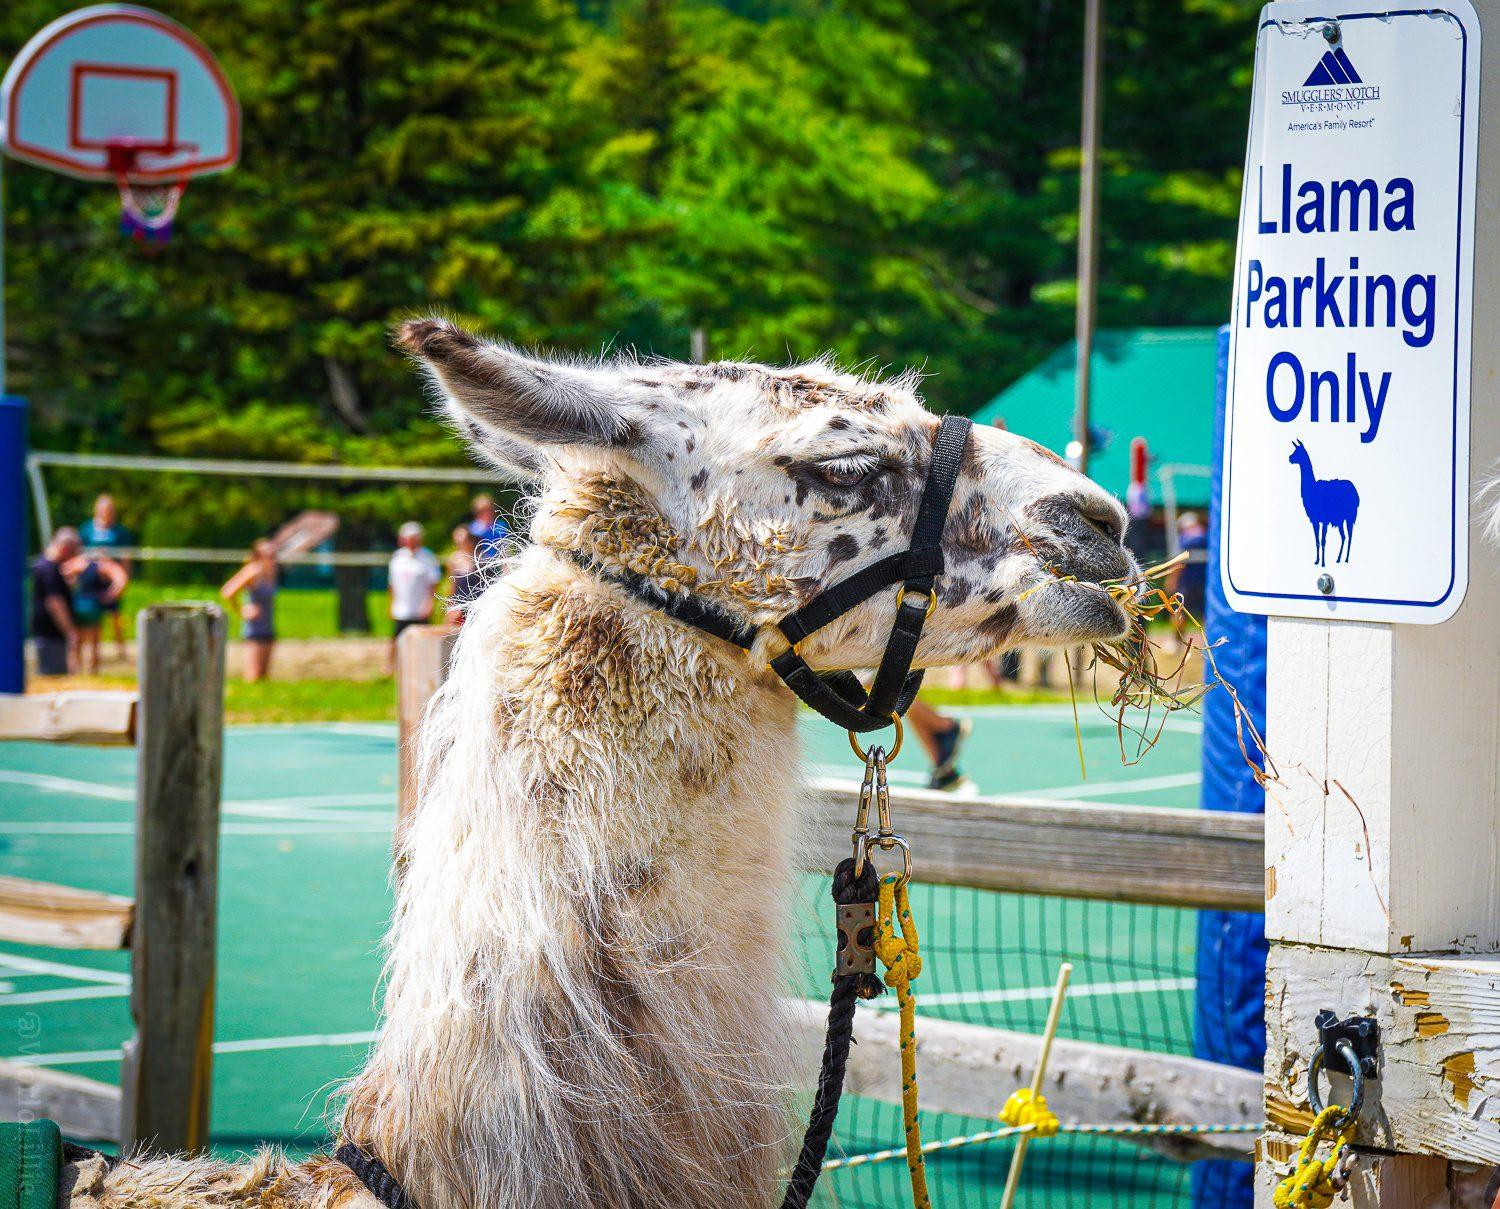 Llama Parking Only! Respect the sign.